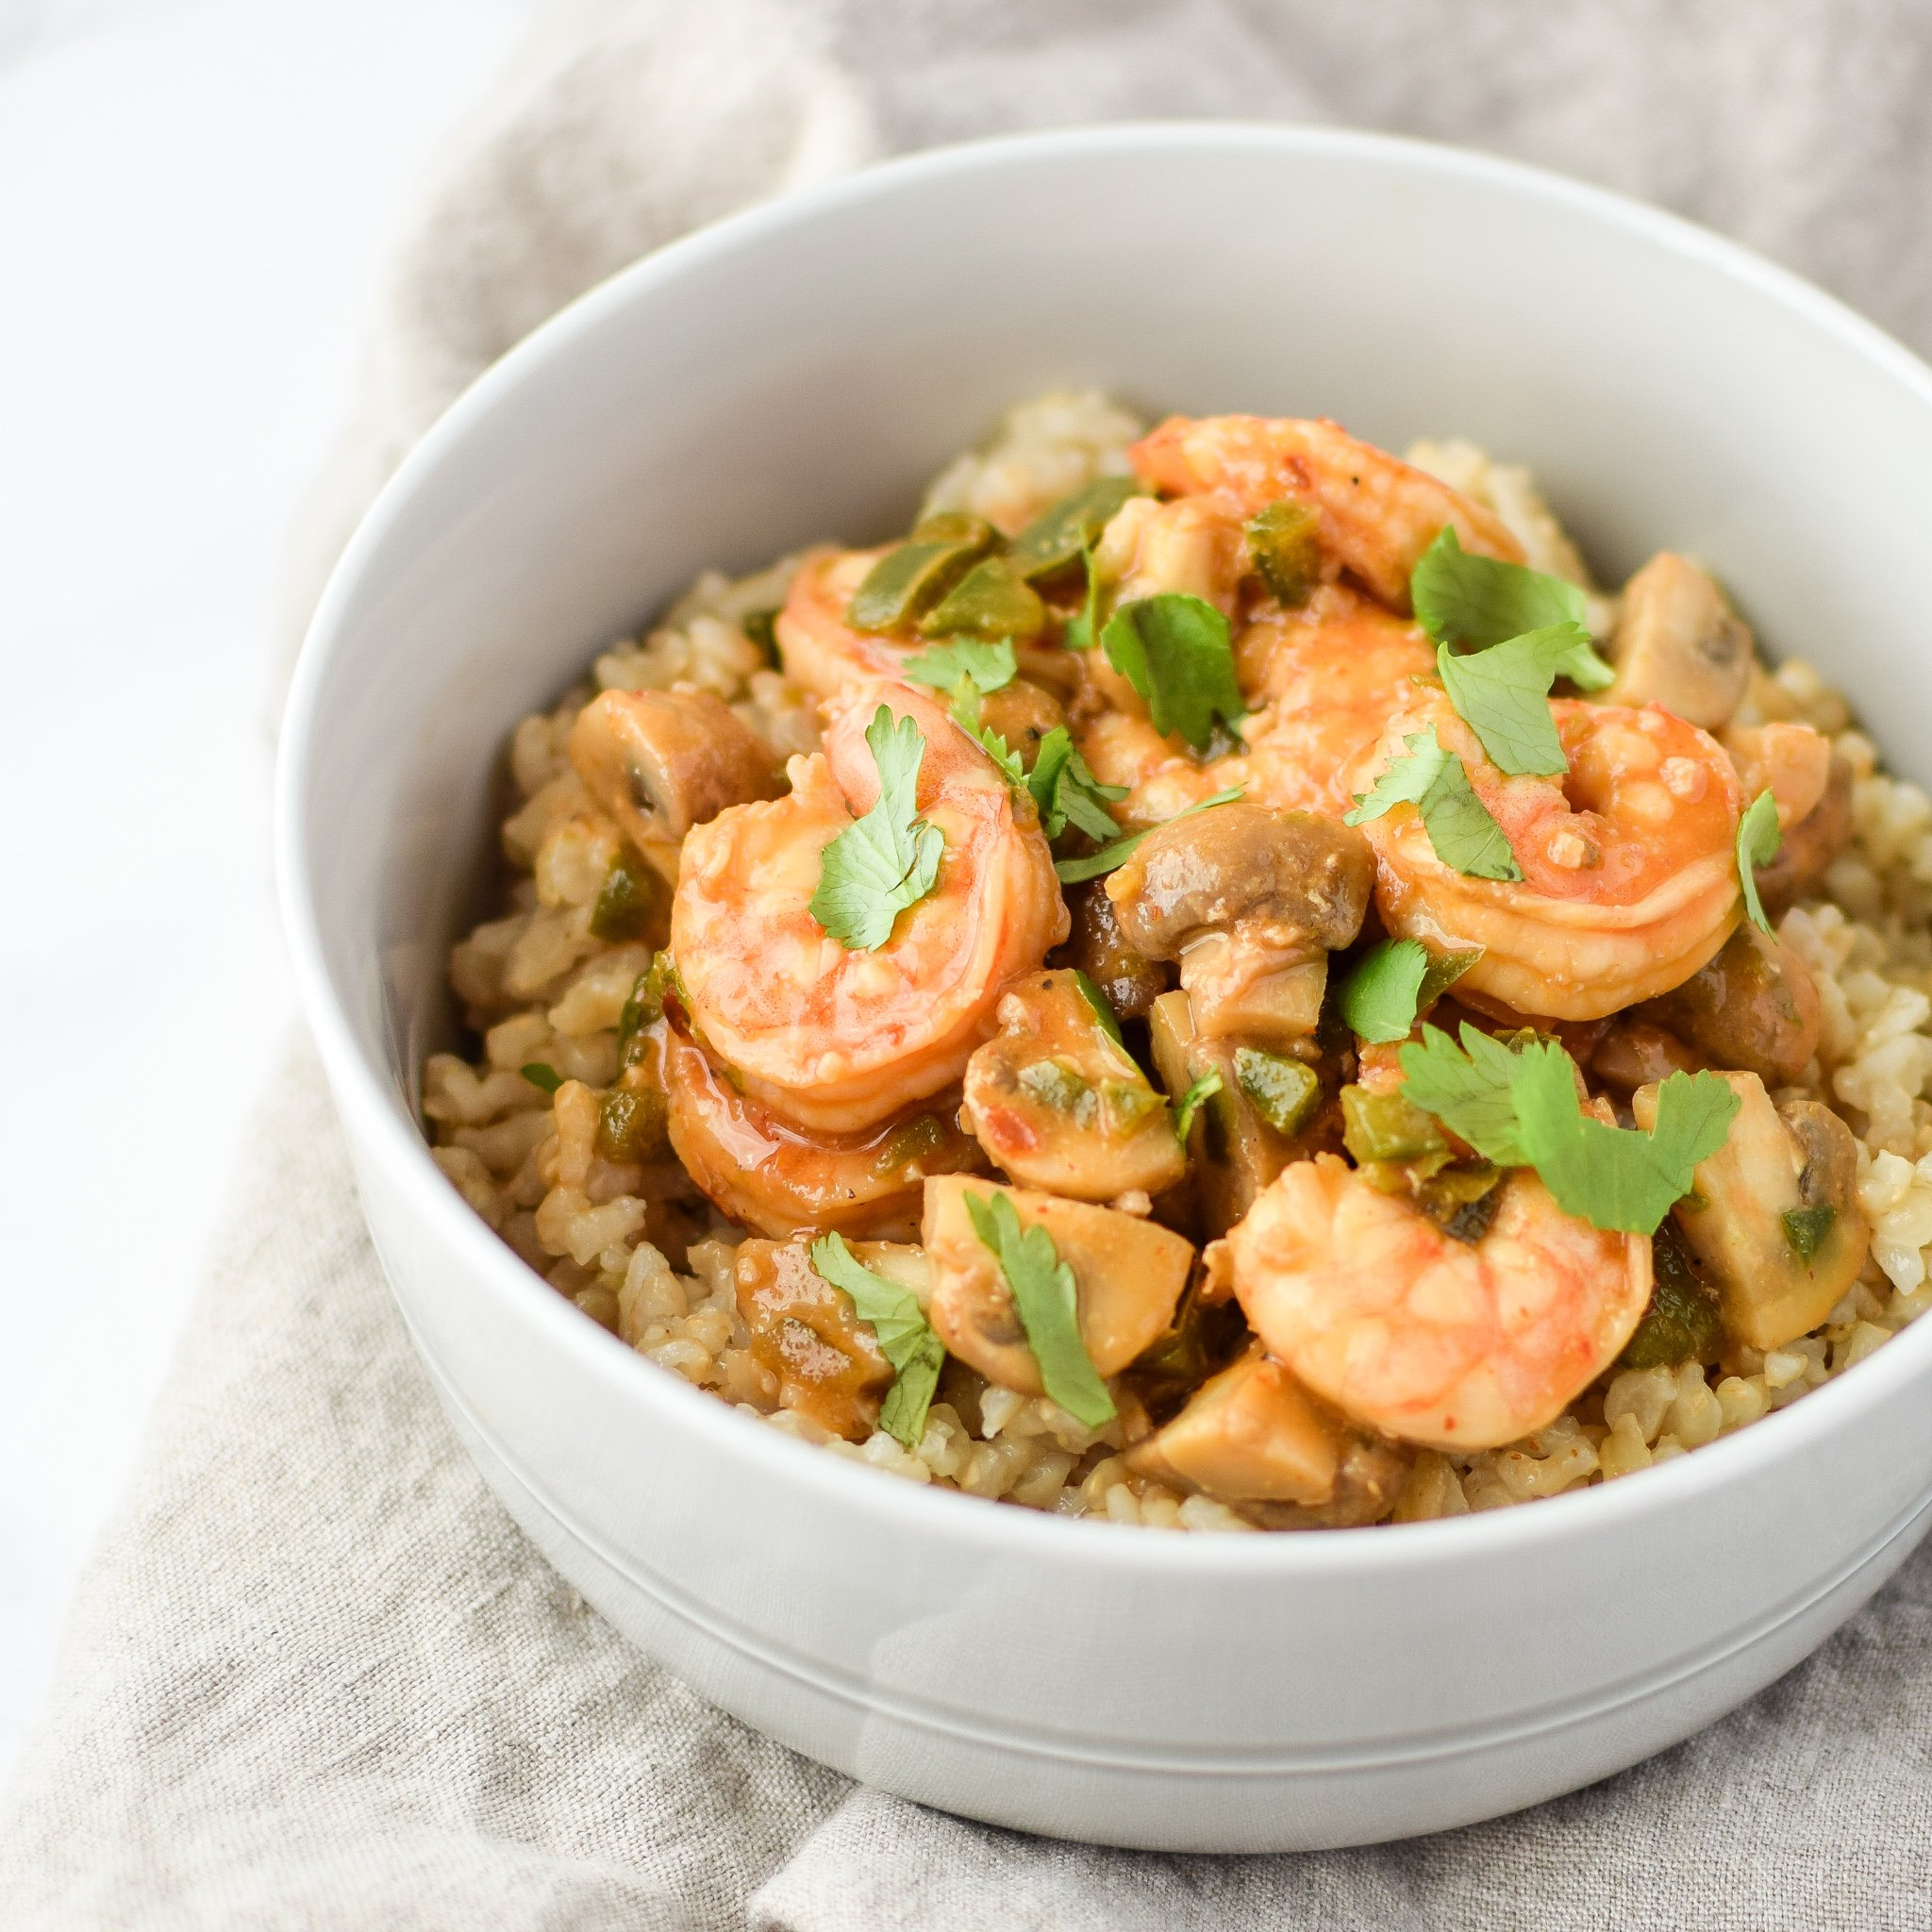 Easy Jalapeño Mushroom Shrimp Stir-Fry For Two recipe - An easy weeknight one-pot meal! Spicy and delicious, and no added corn starch! - ProjectMealPlan.com